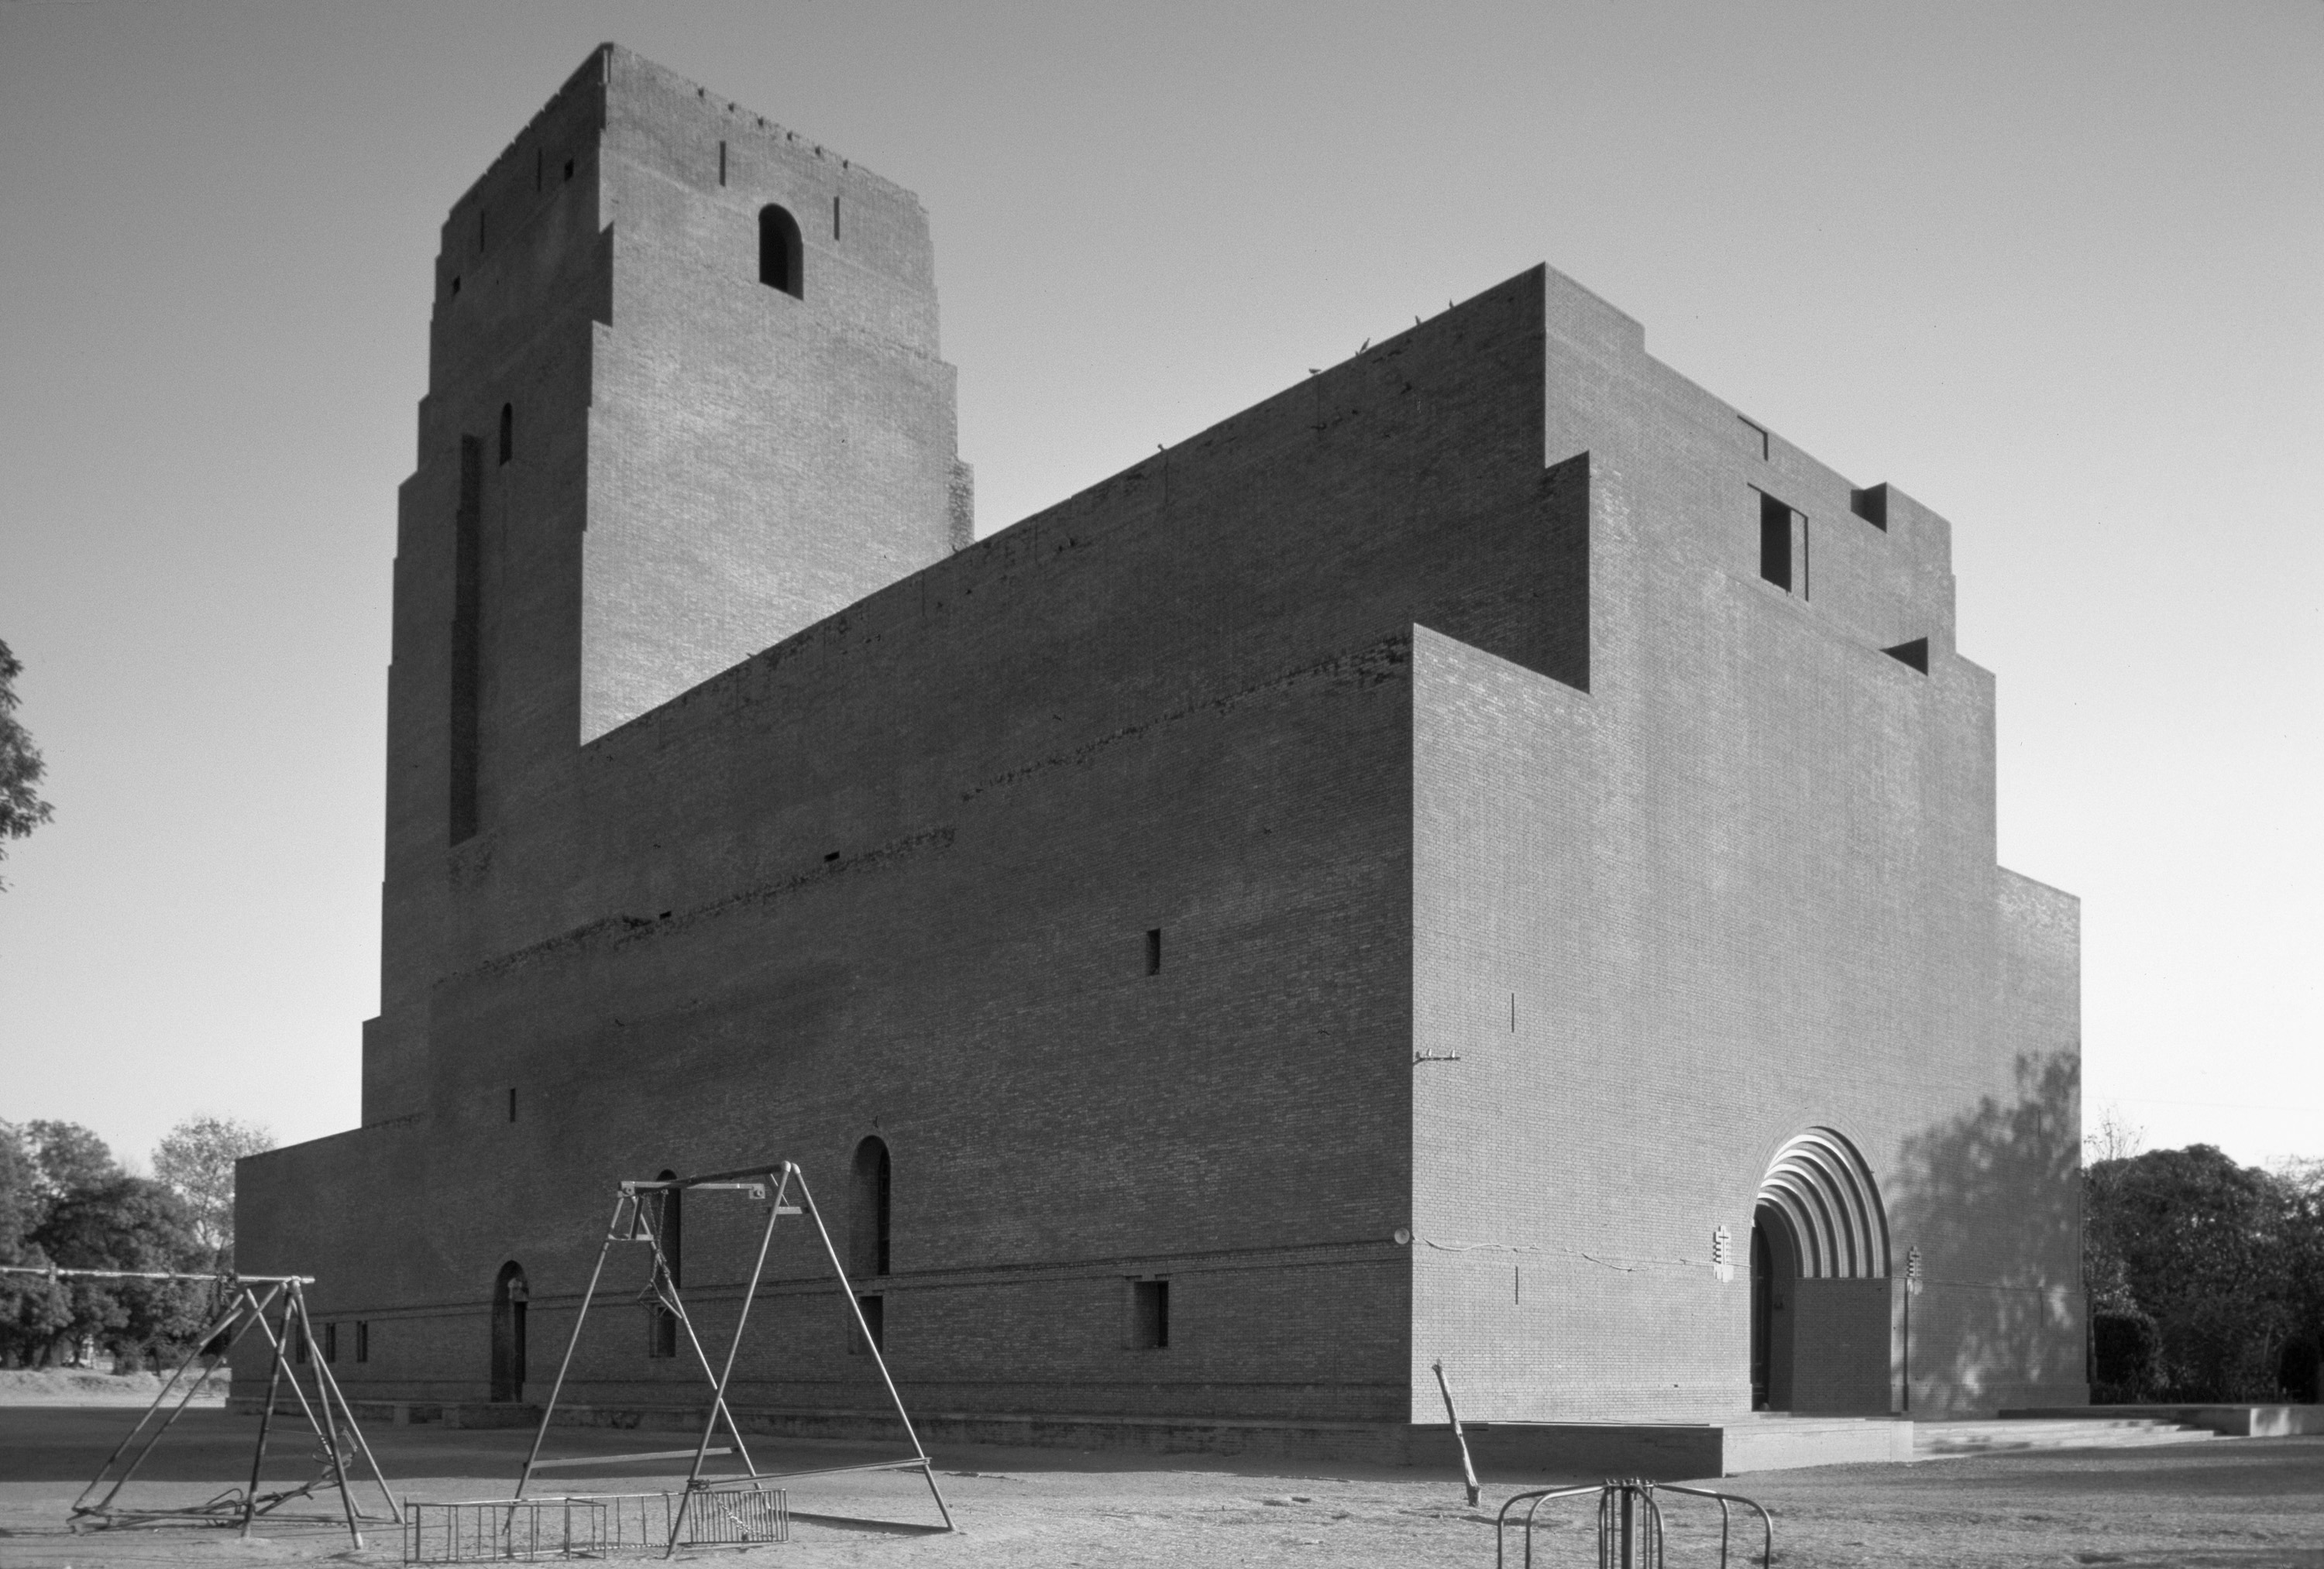 A journey of 100 years of Architecture in India | Part 01 - 1928 St Martins Garrison Church New Delhi